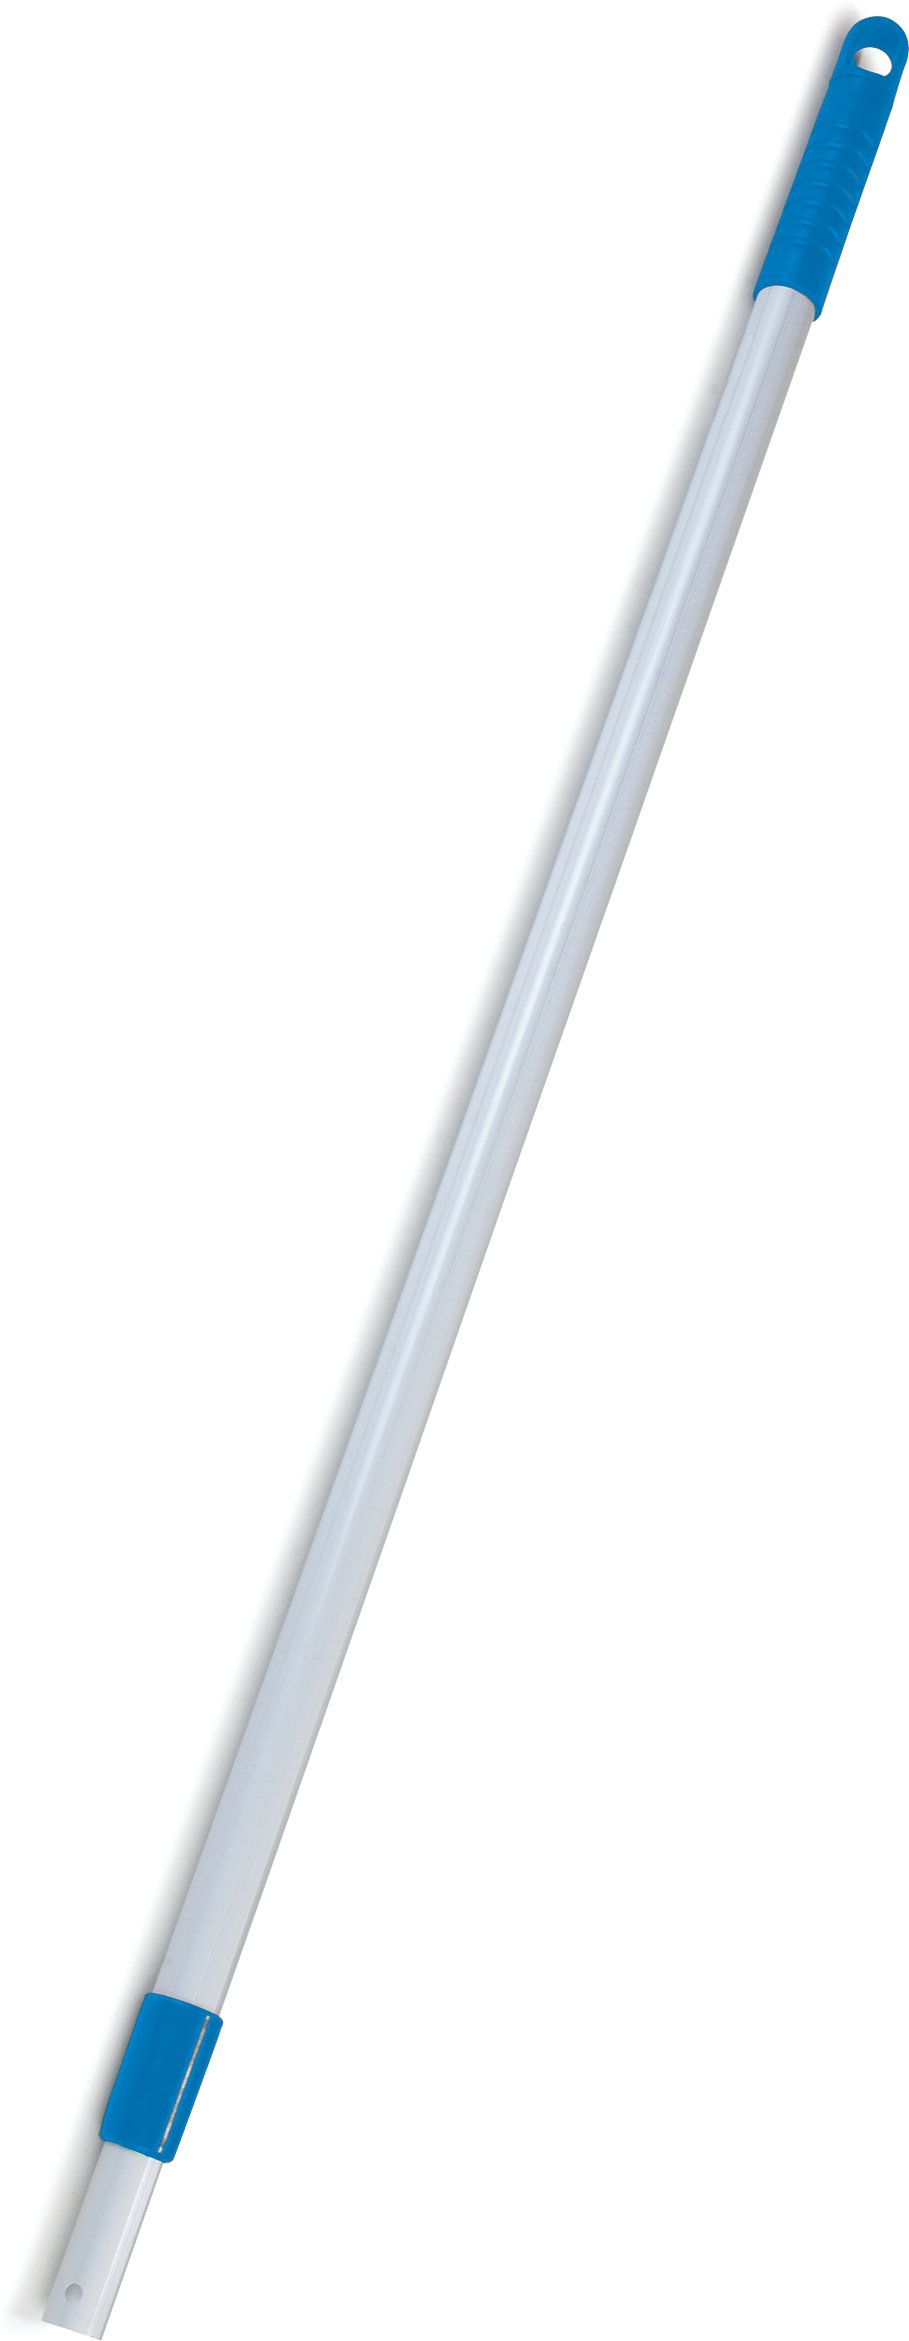 Carlisle 363367000 Telescopic Handle (Case of 12) by Carlisle